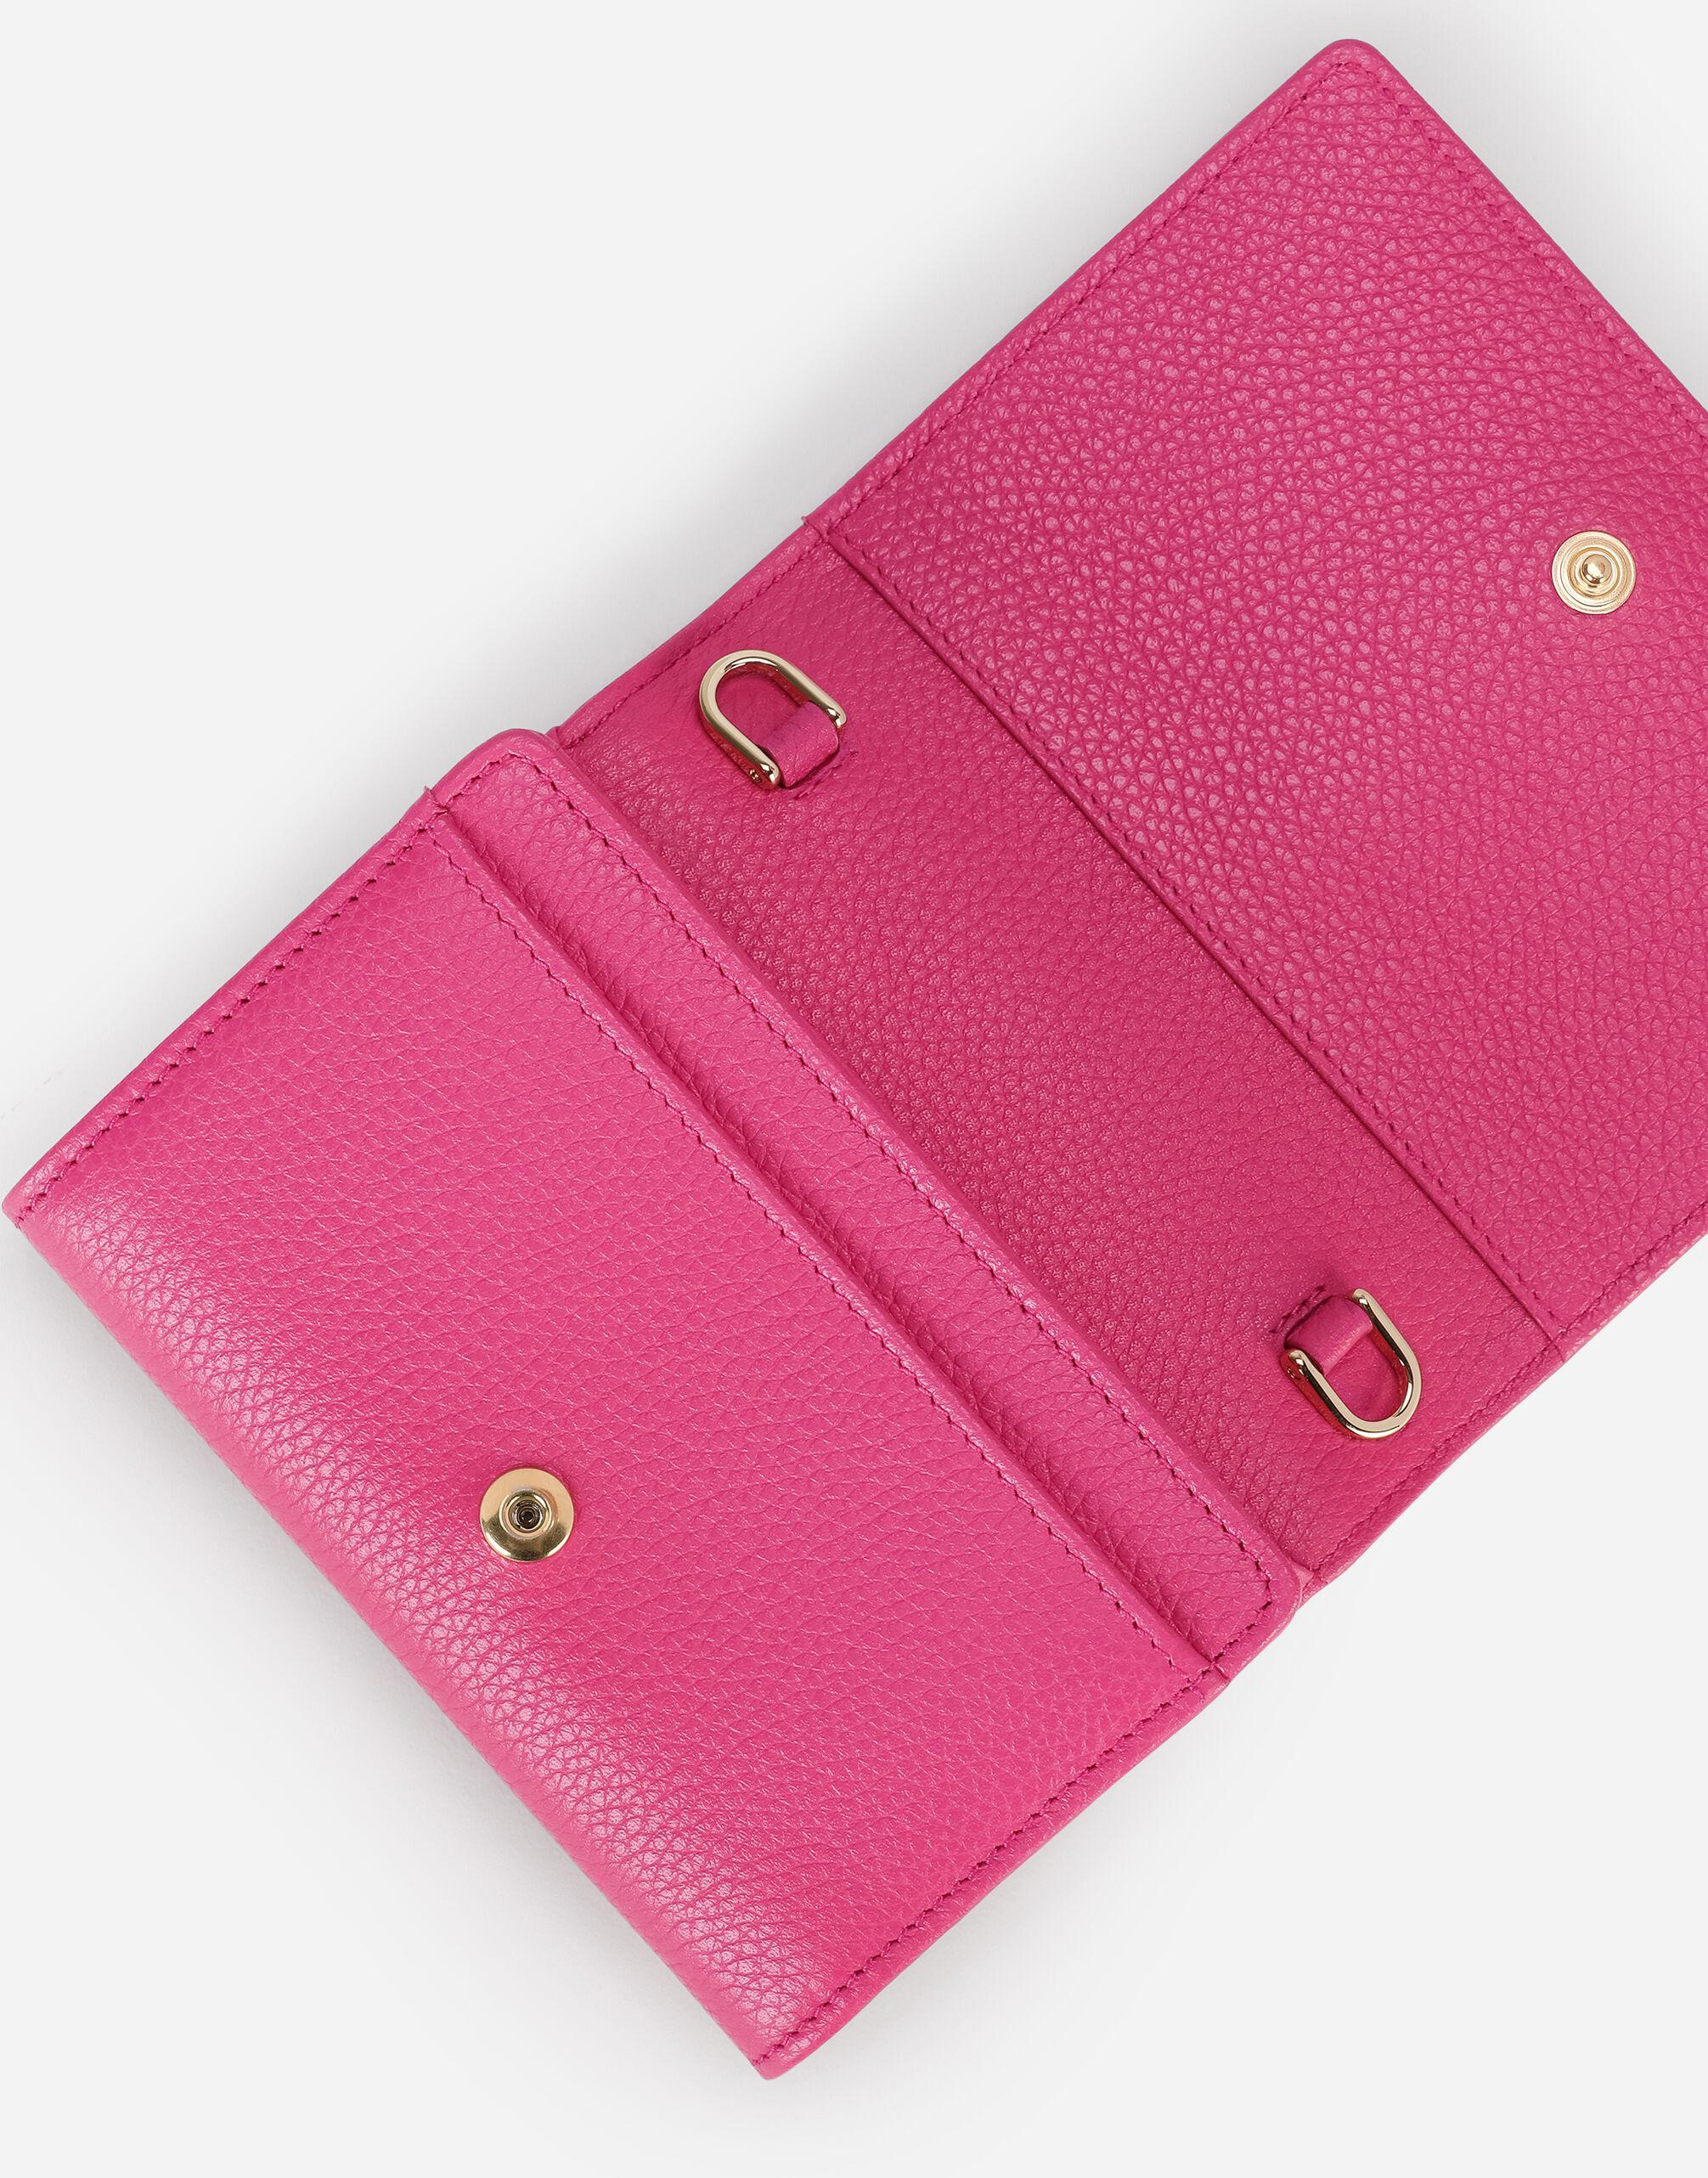 Tumbled calfskin wallet with chain detail 3